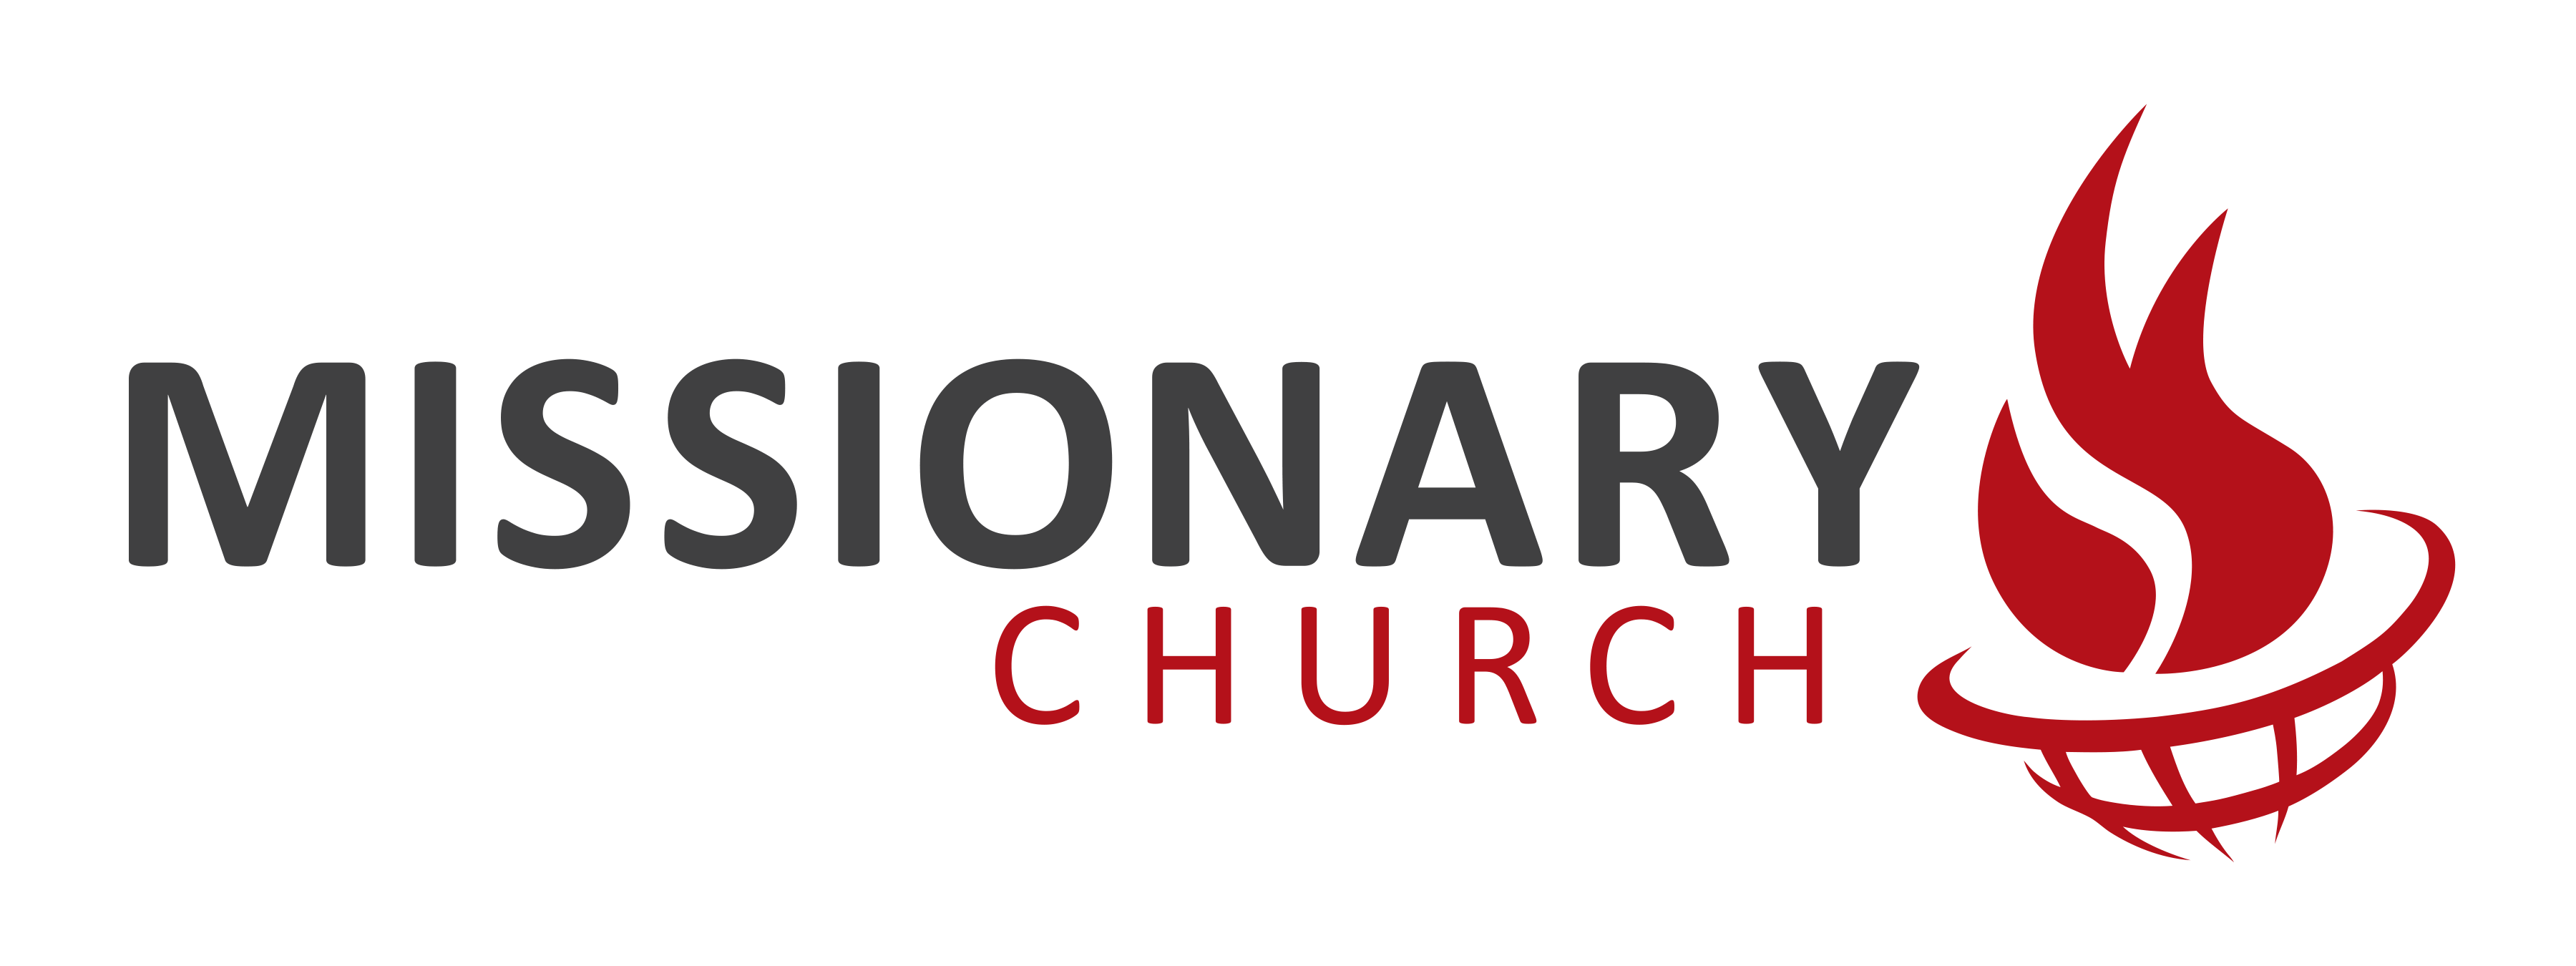 The Missionary Church logo